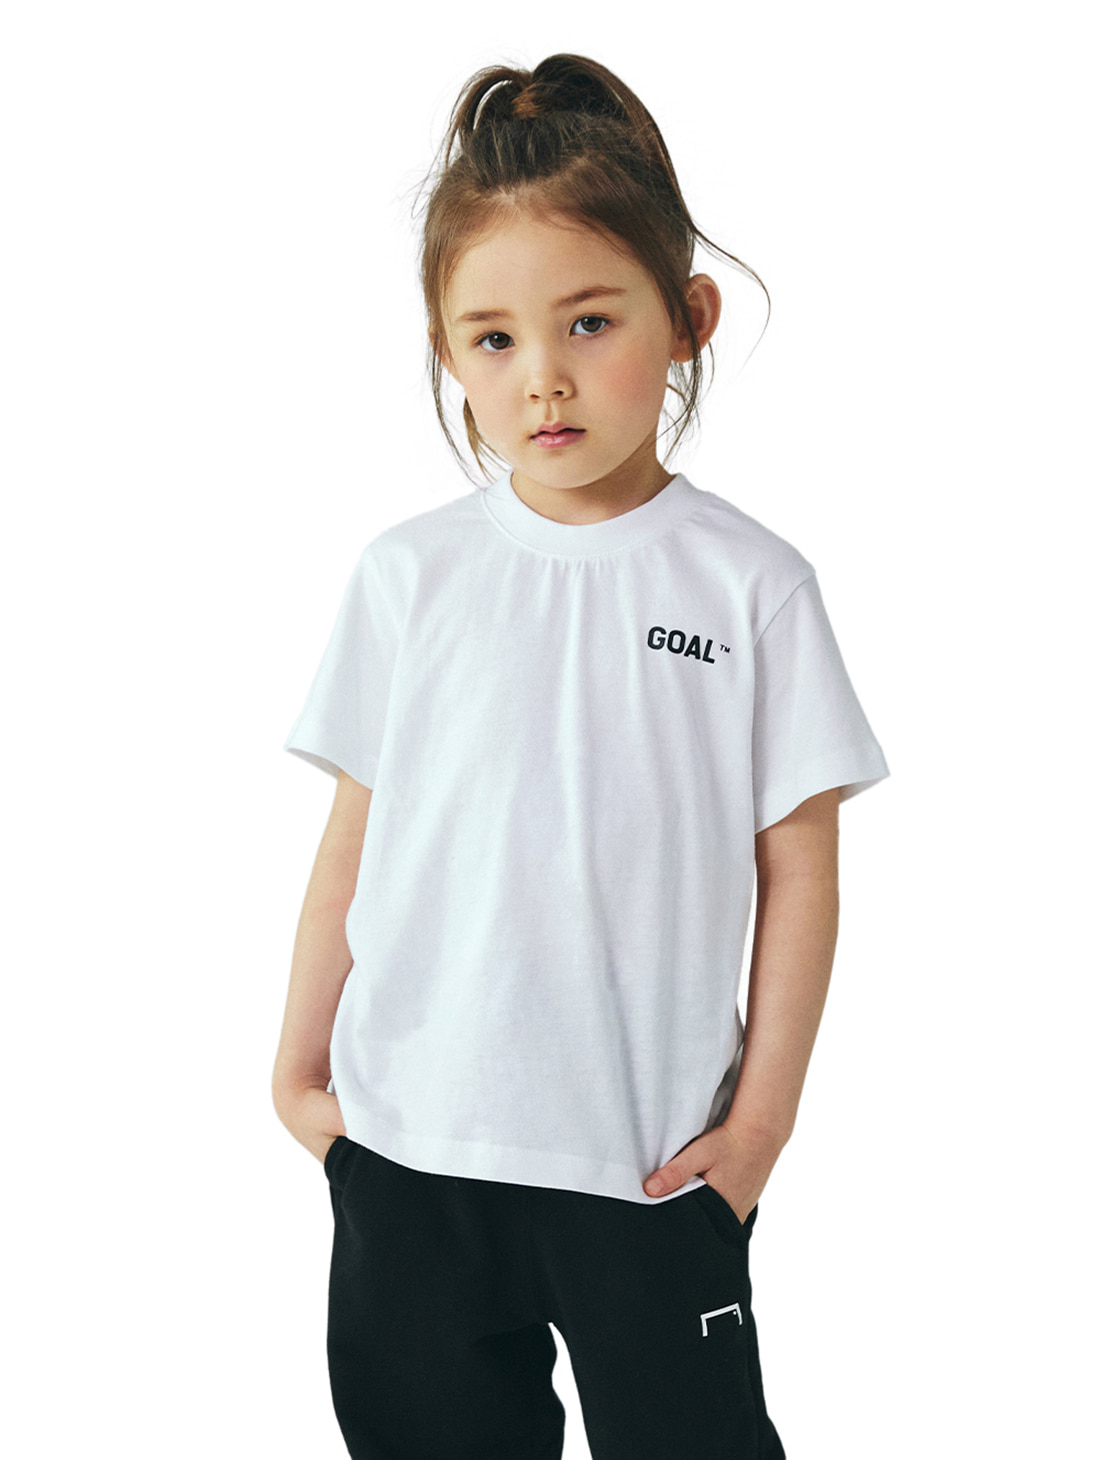 GOALSTUDIO (KIDS) TEXT LOGO TEE - WHITE